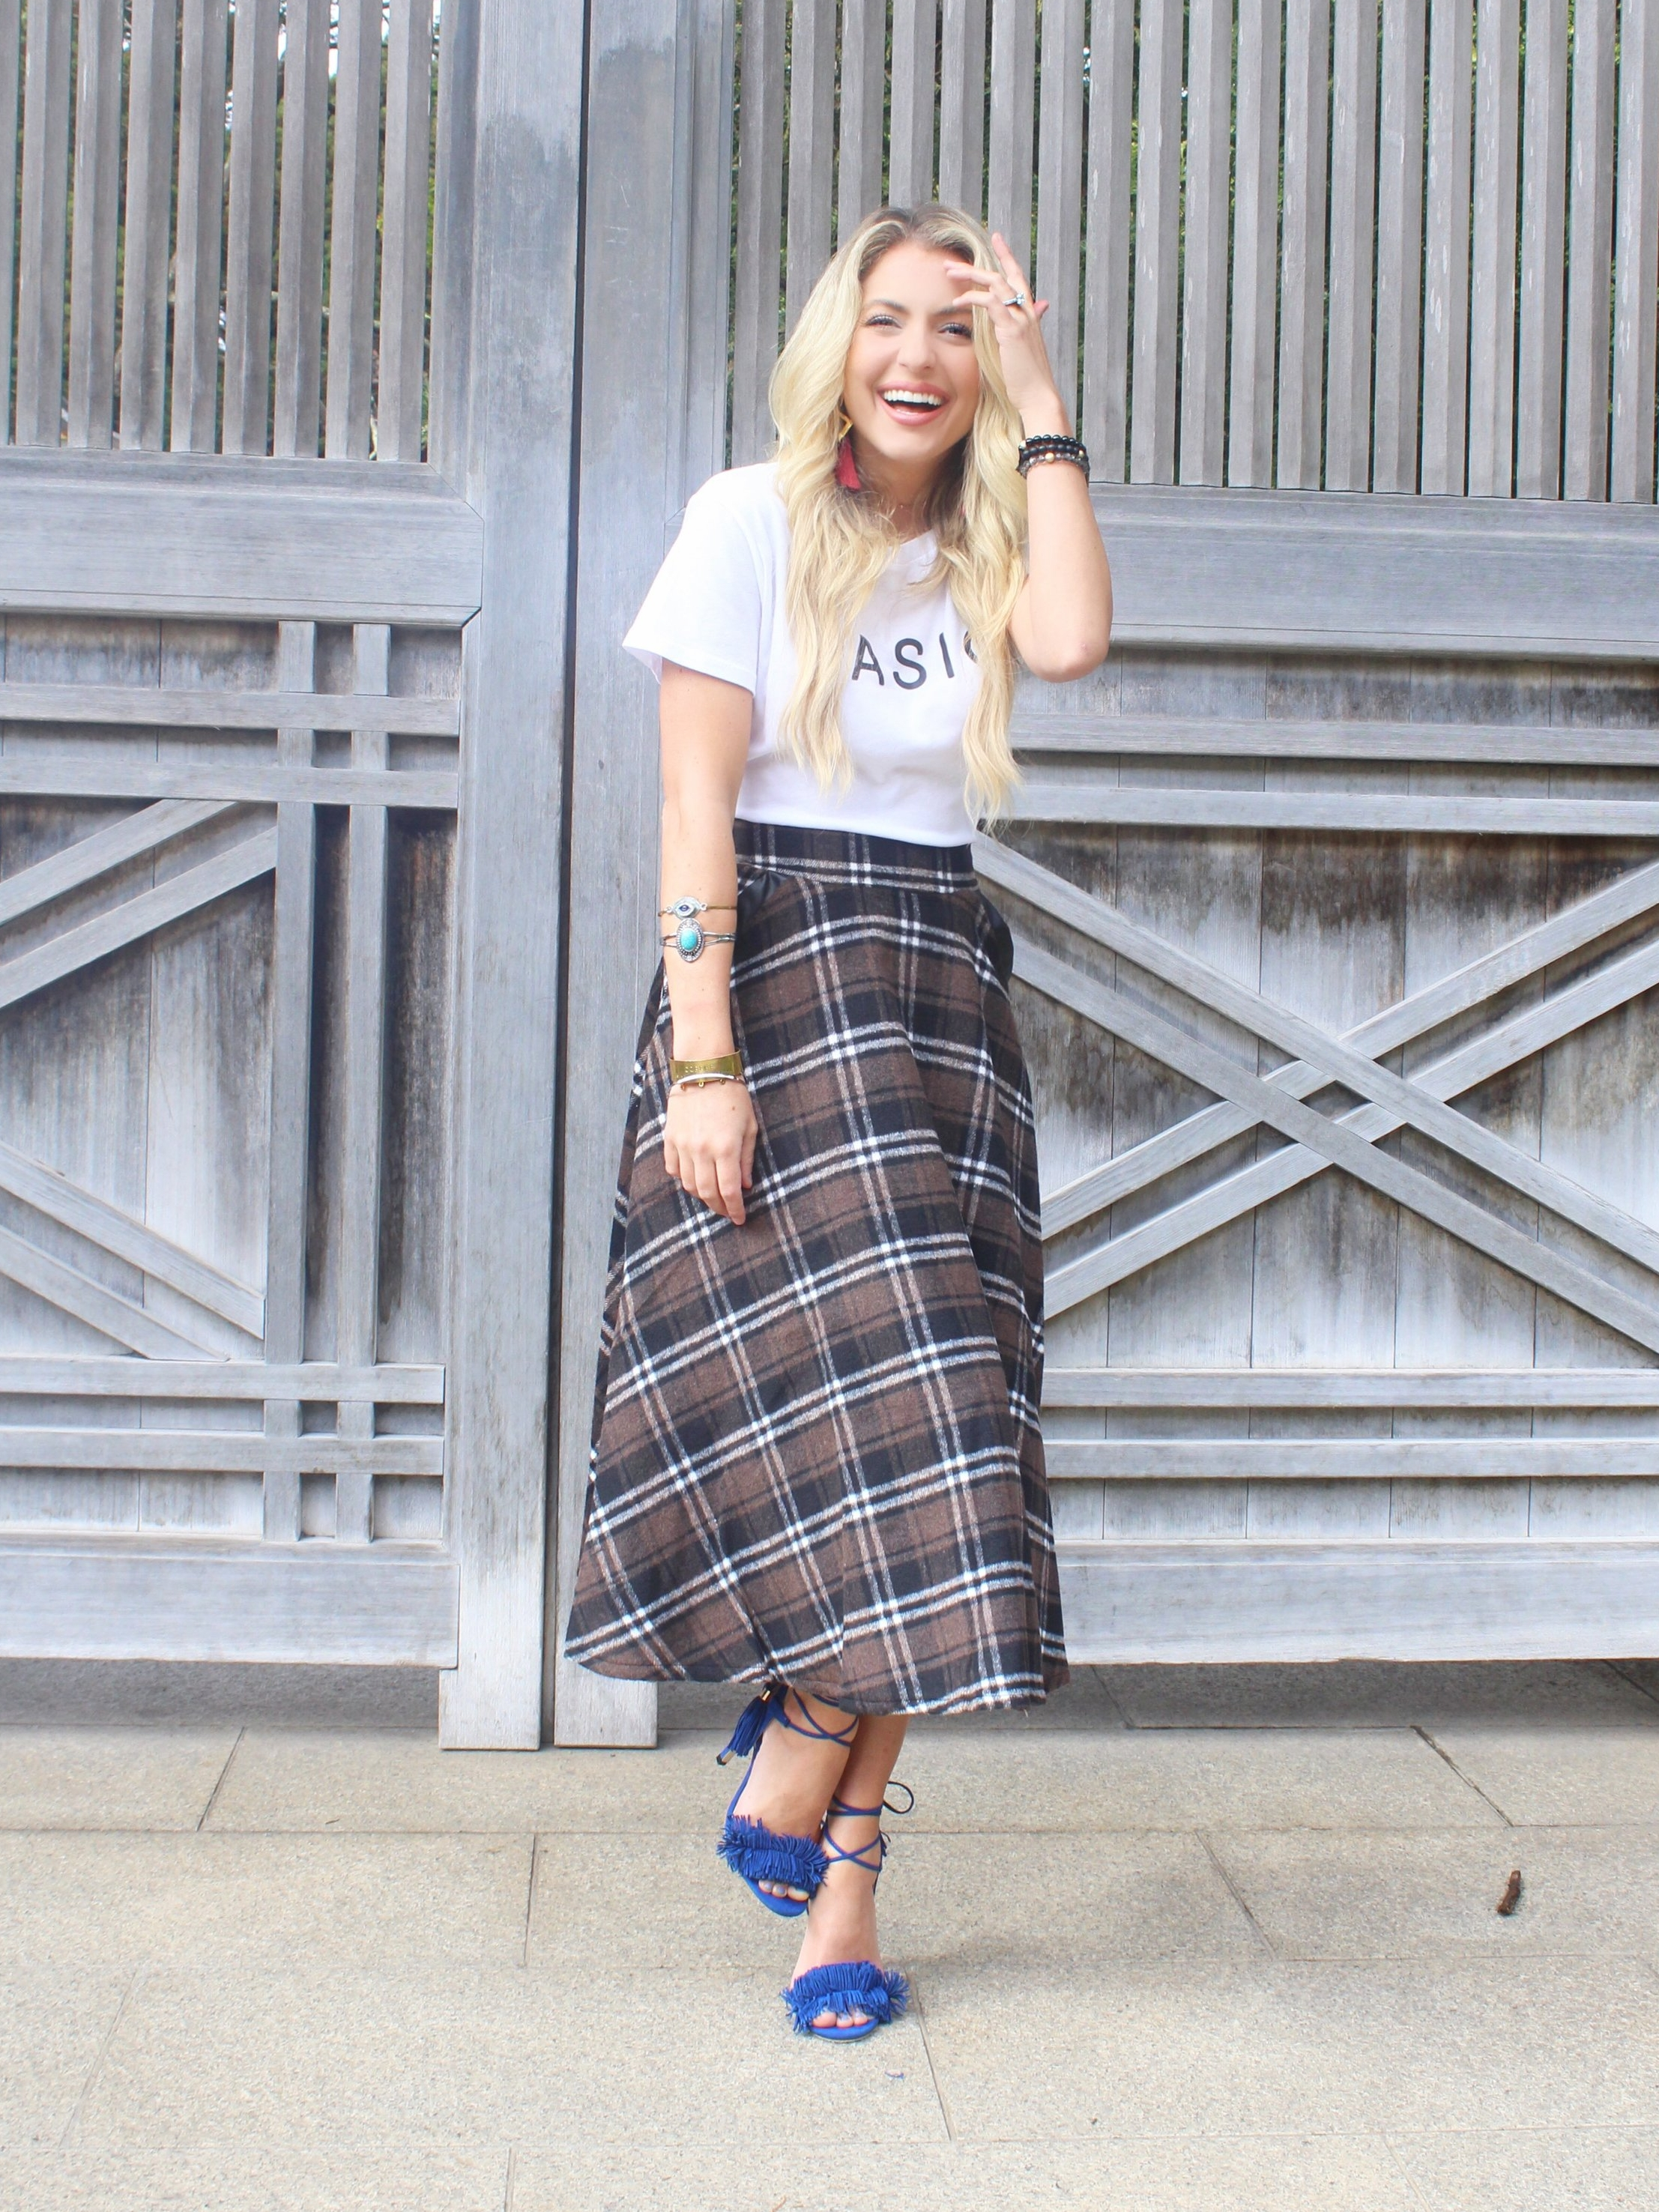 Plaid Midi Skirt Full Length.jpg